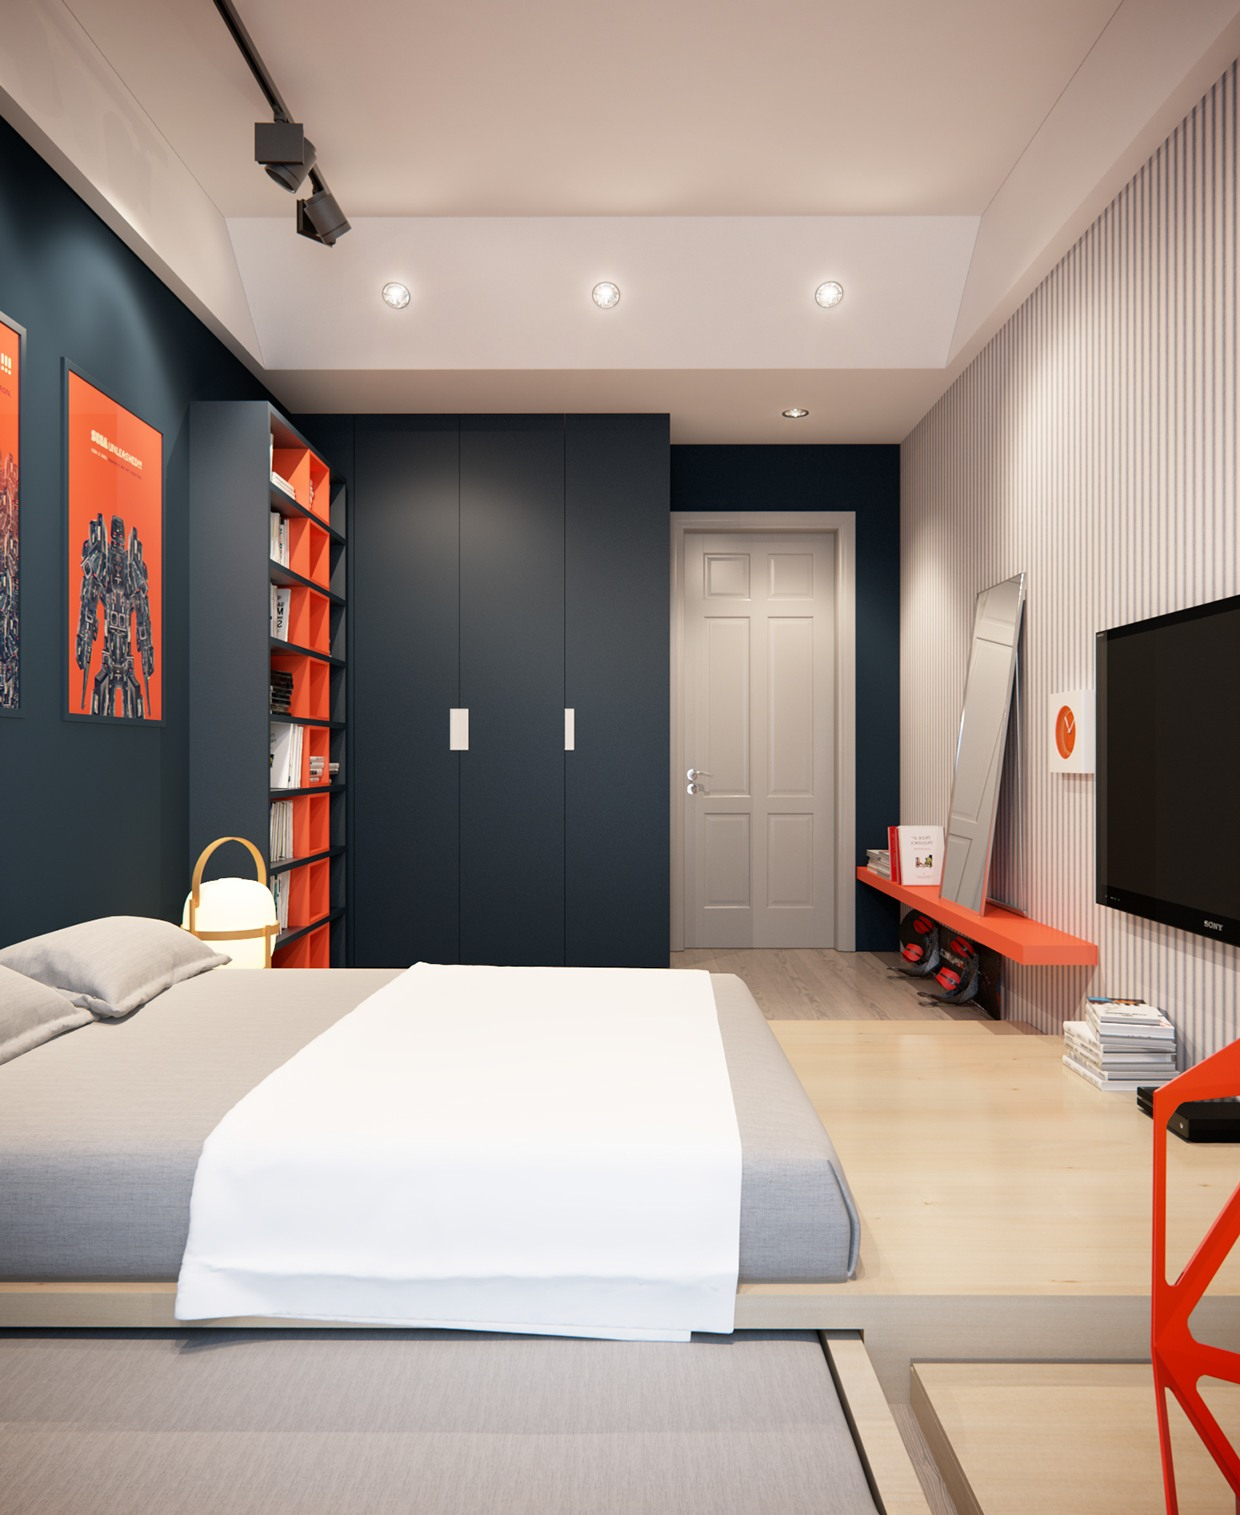 modern boys bedroomcool boys bedroom ideas modern new design ideas boys room design ideas - Boys Bedroom Design